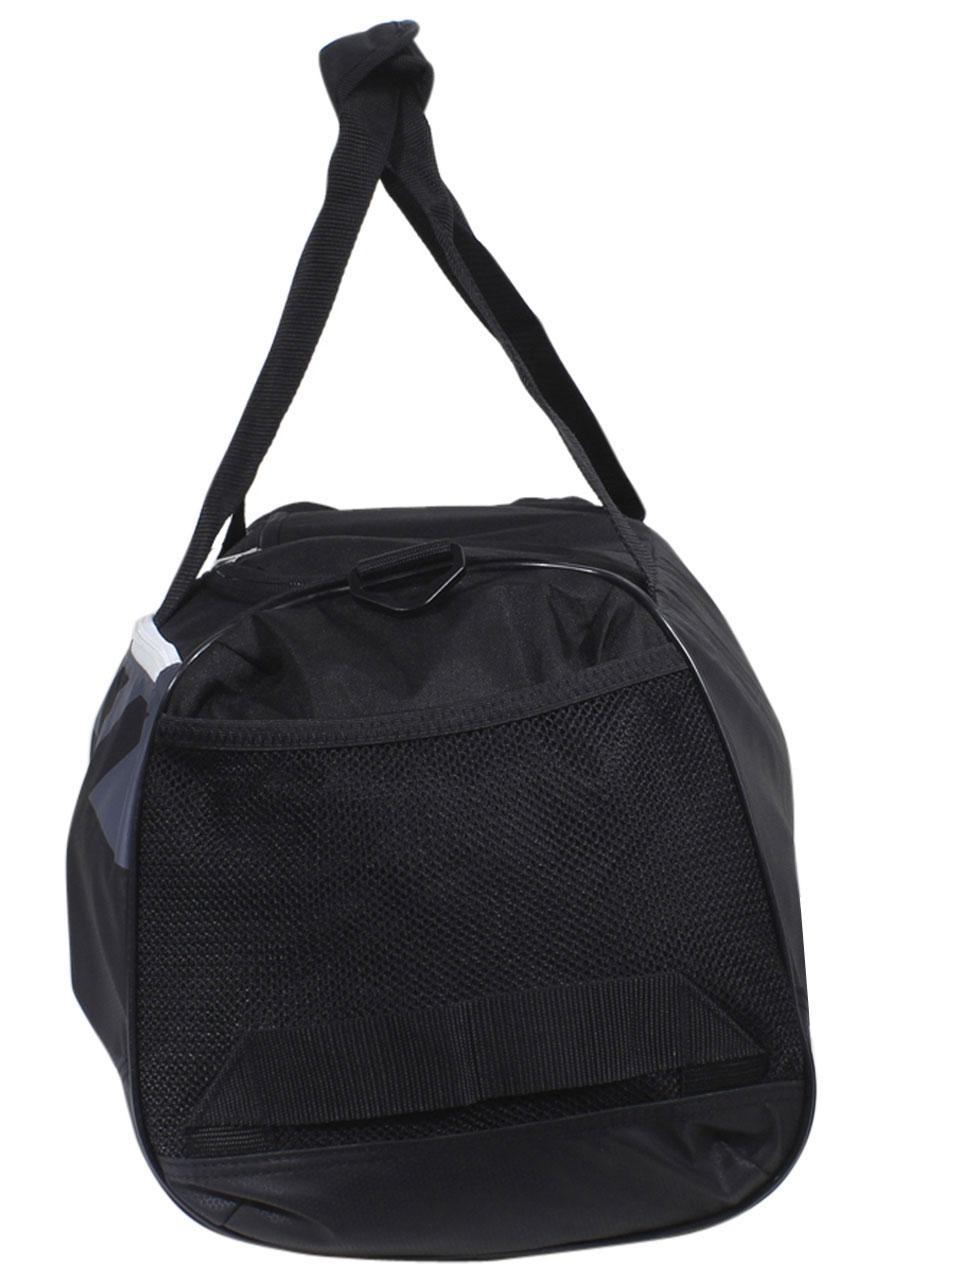 Adidas Team Issue Duffel Bag by Adidas. Touch to zoom c3d41bebf68d8